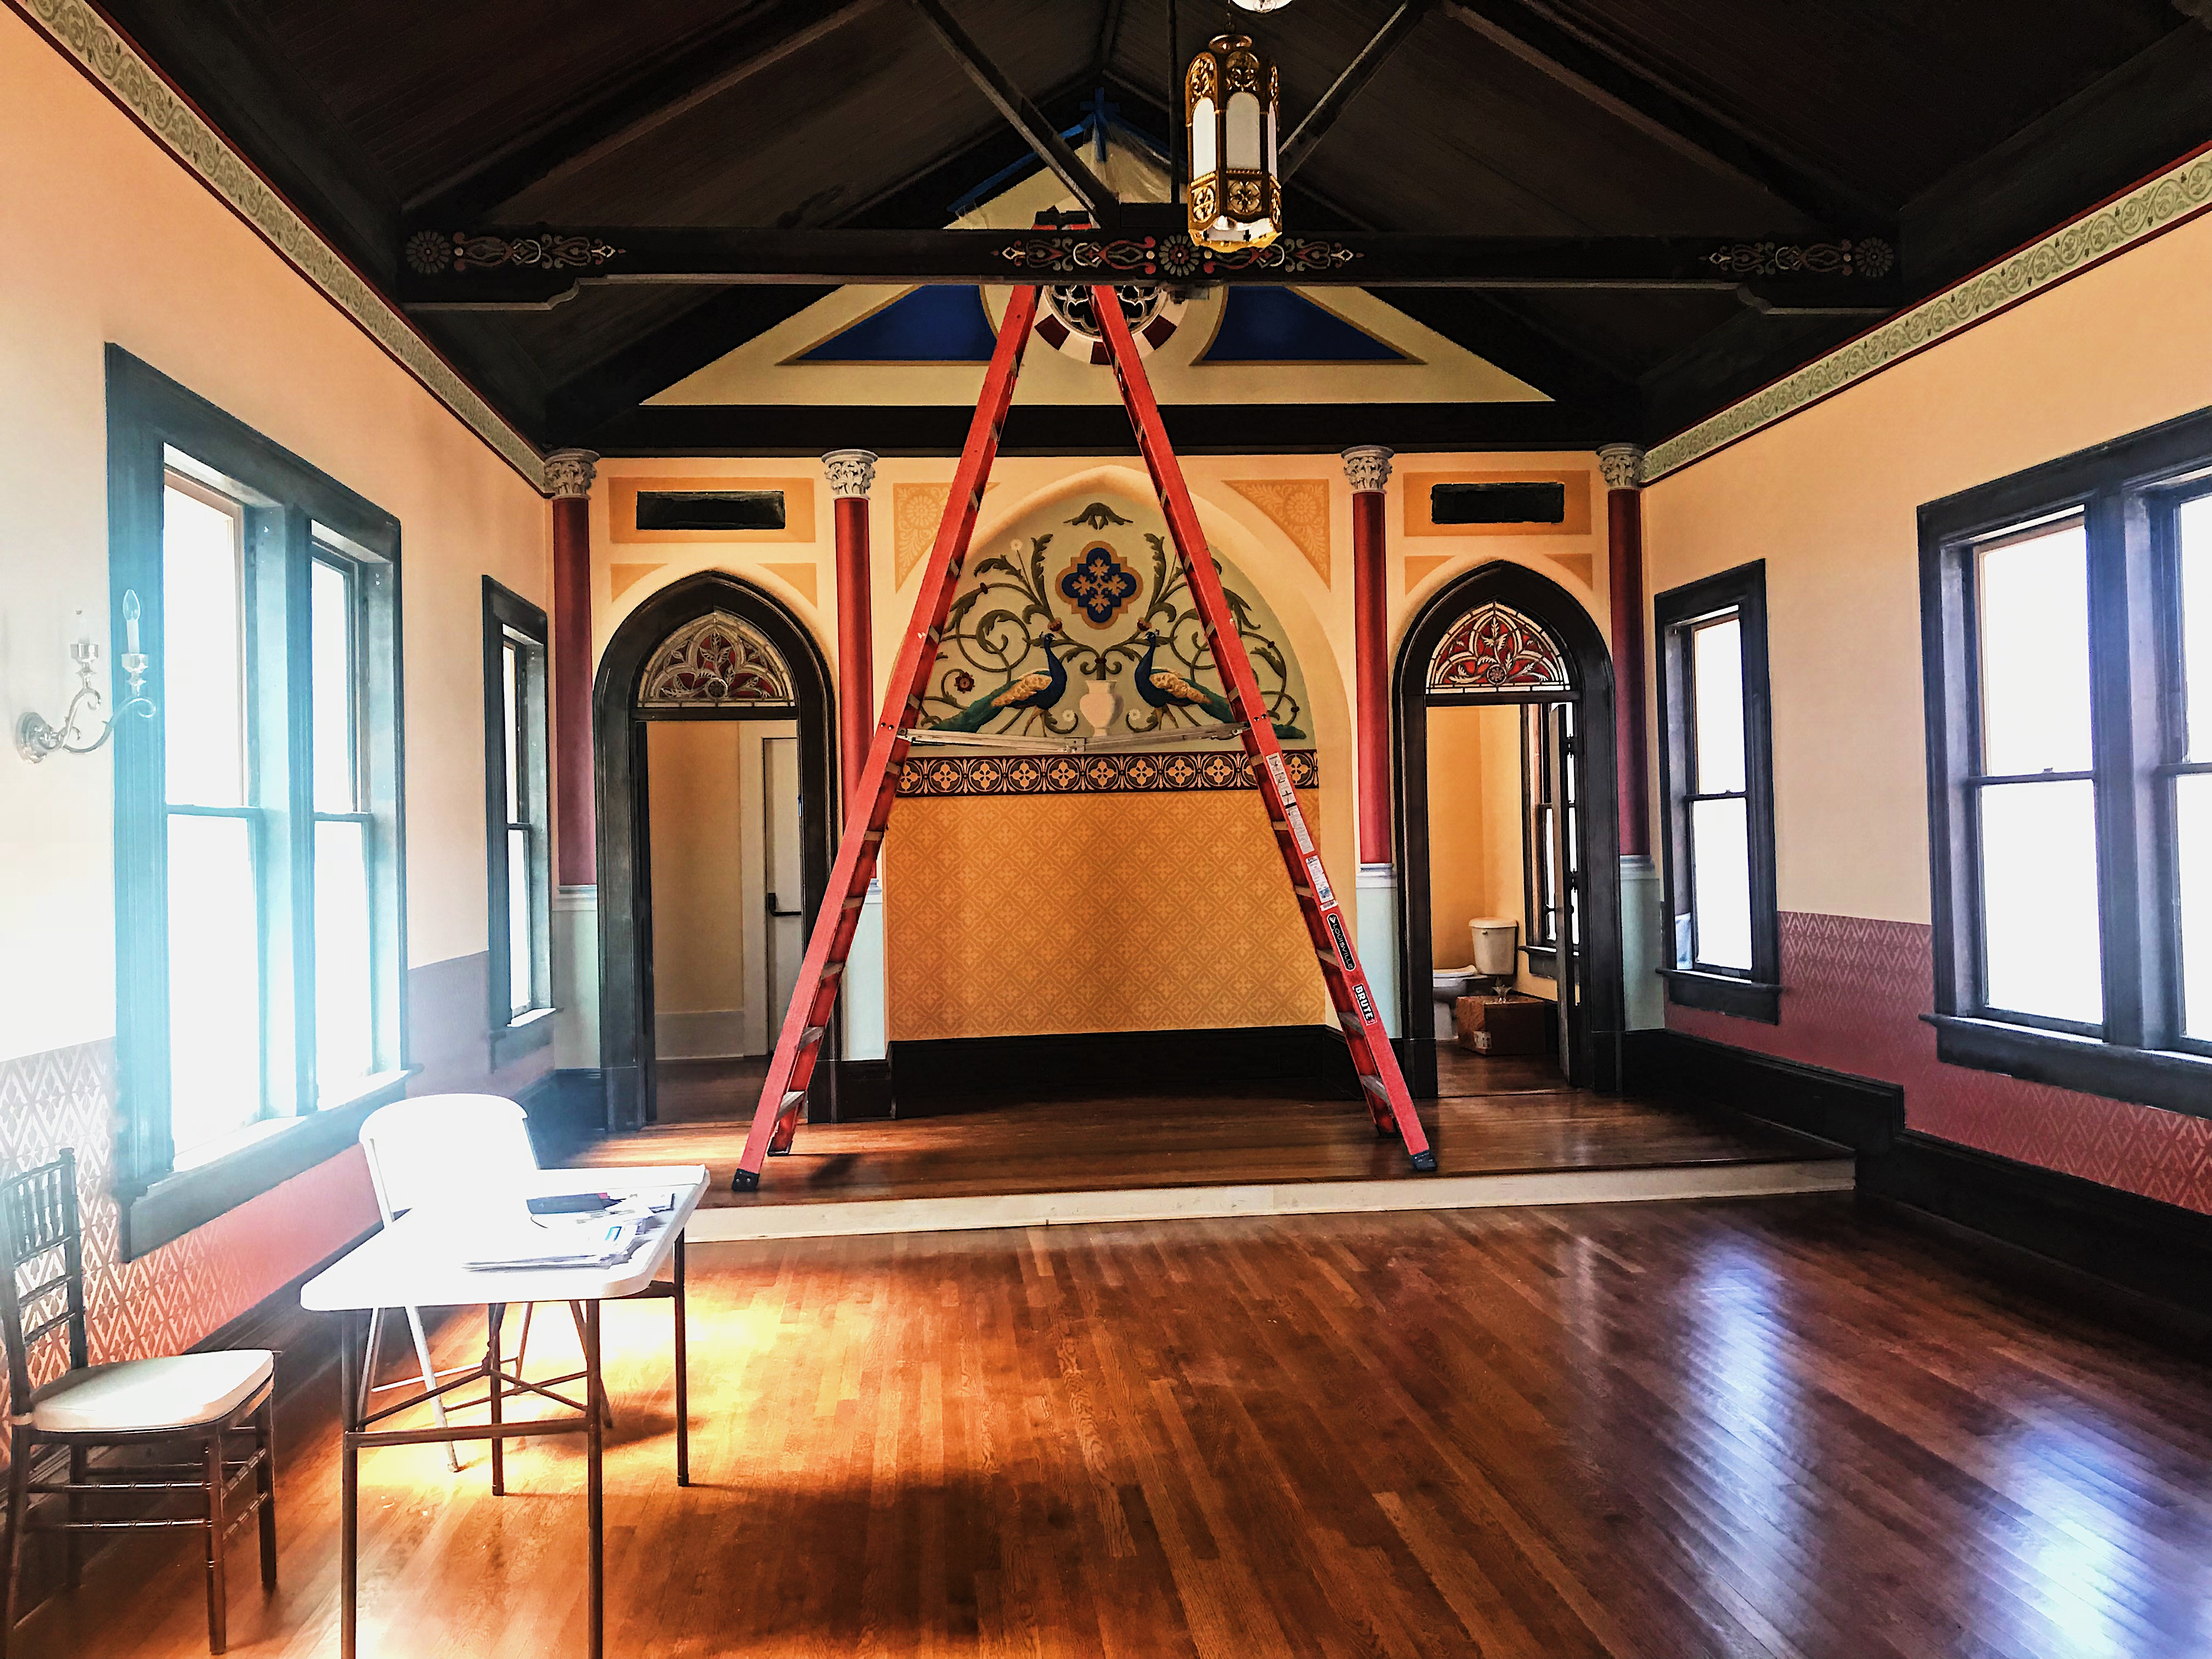 La Scala 2nd Floor Wedding Chapel Will Be Used For Ceremonies And Private Functions